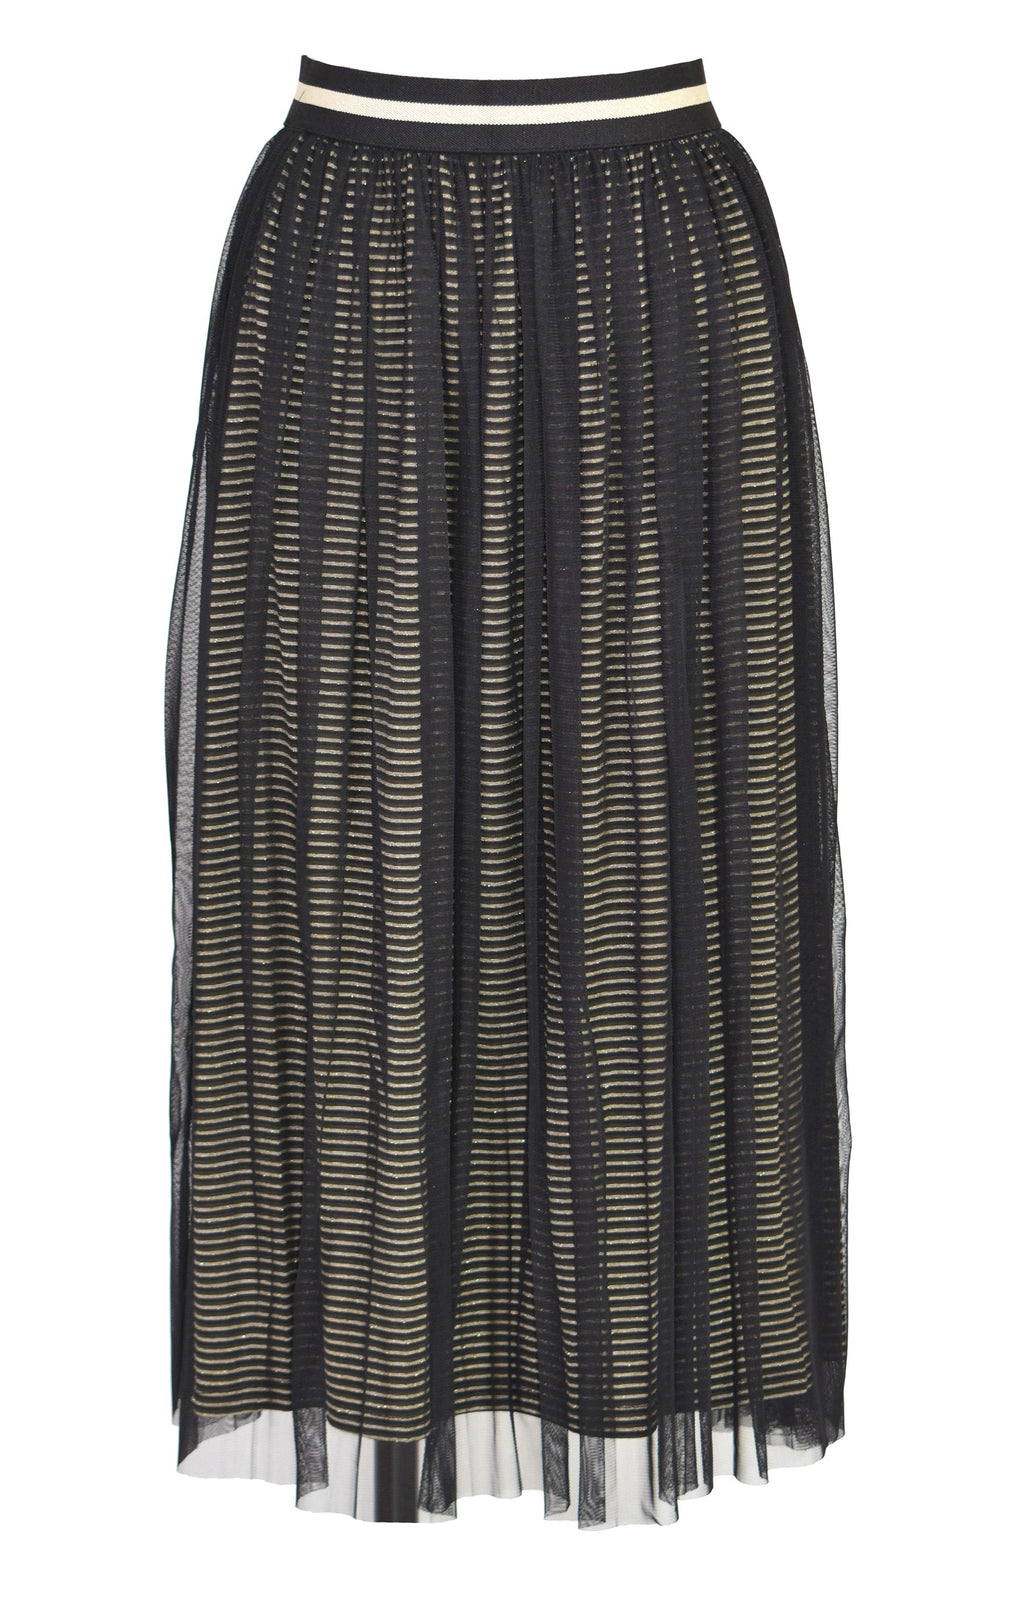 Metal stripes lace midi dress